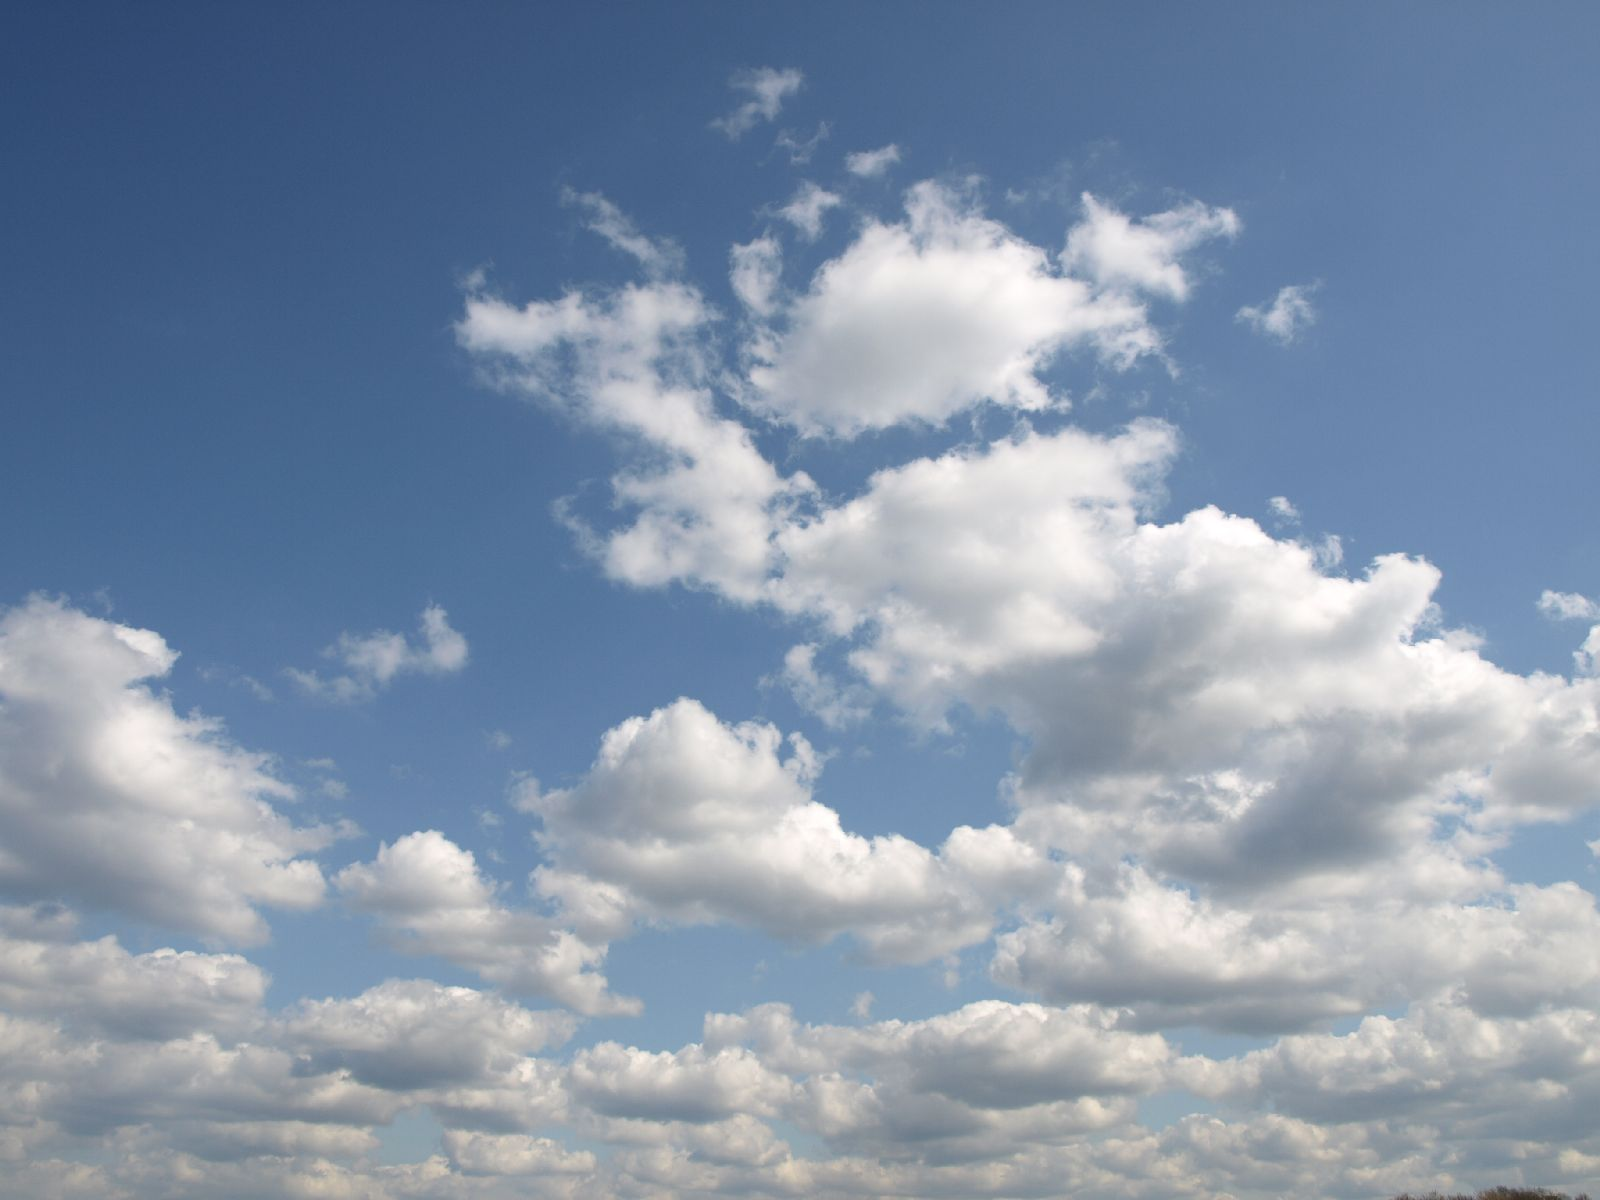 Sky_Clouds_Photo_Texture_A_P4241756